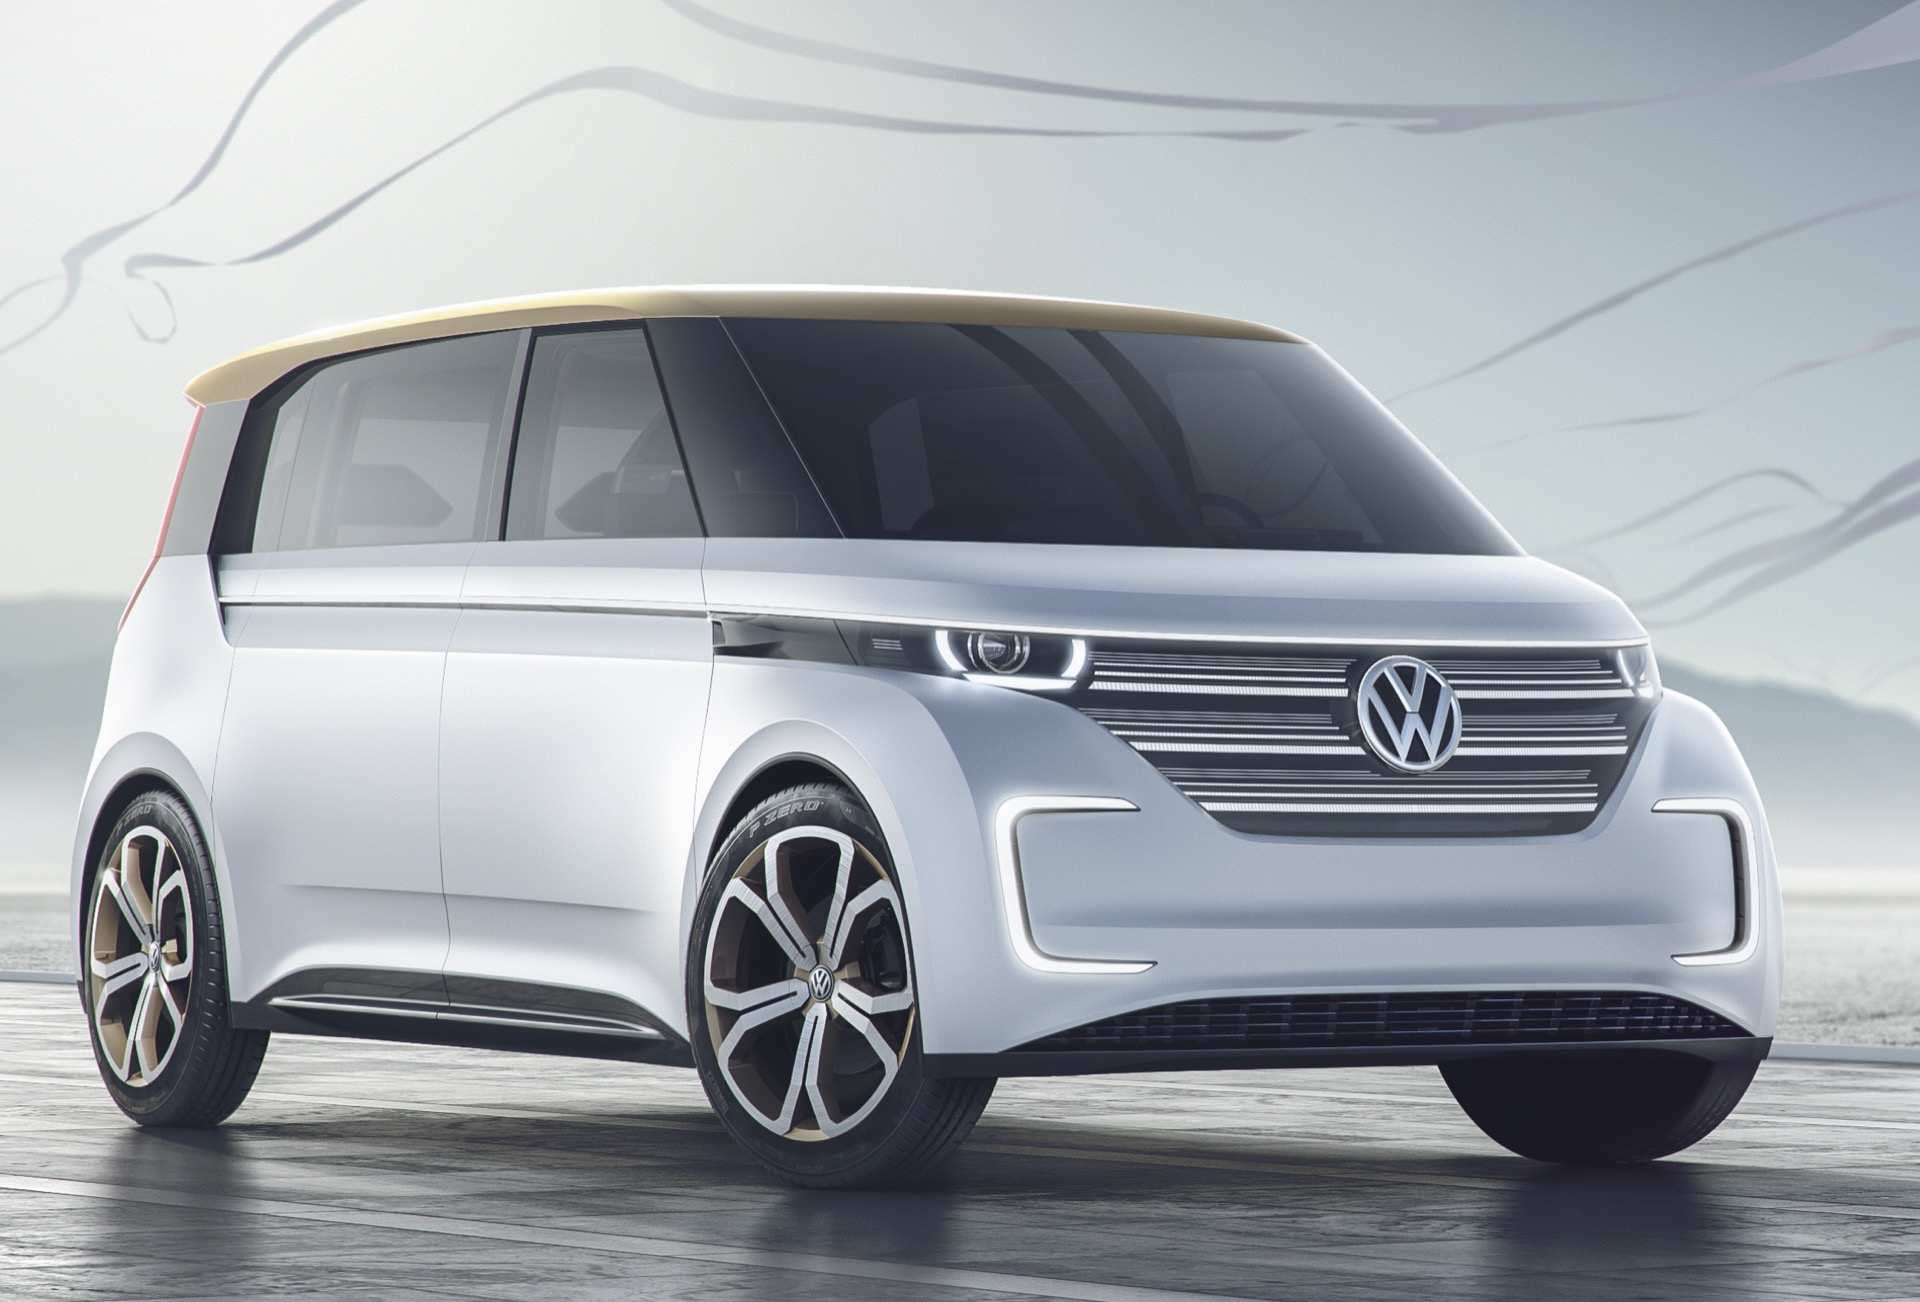 97 All New Volkswagen New Cars 2020 Redesign for Volkswagen New Cars 2020